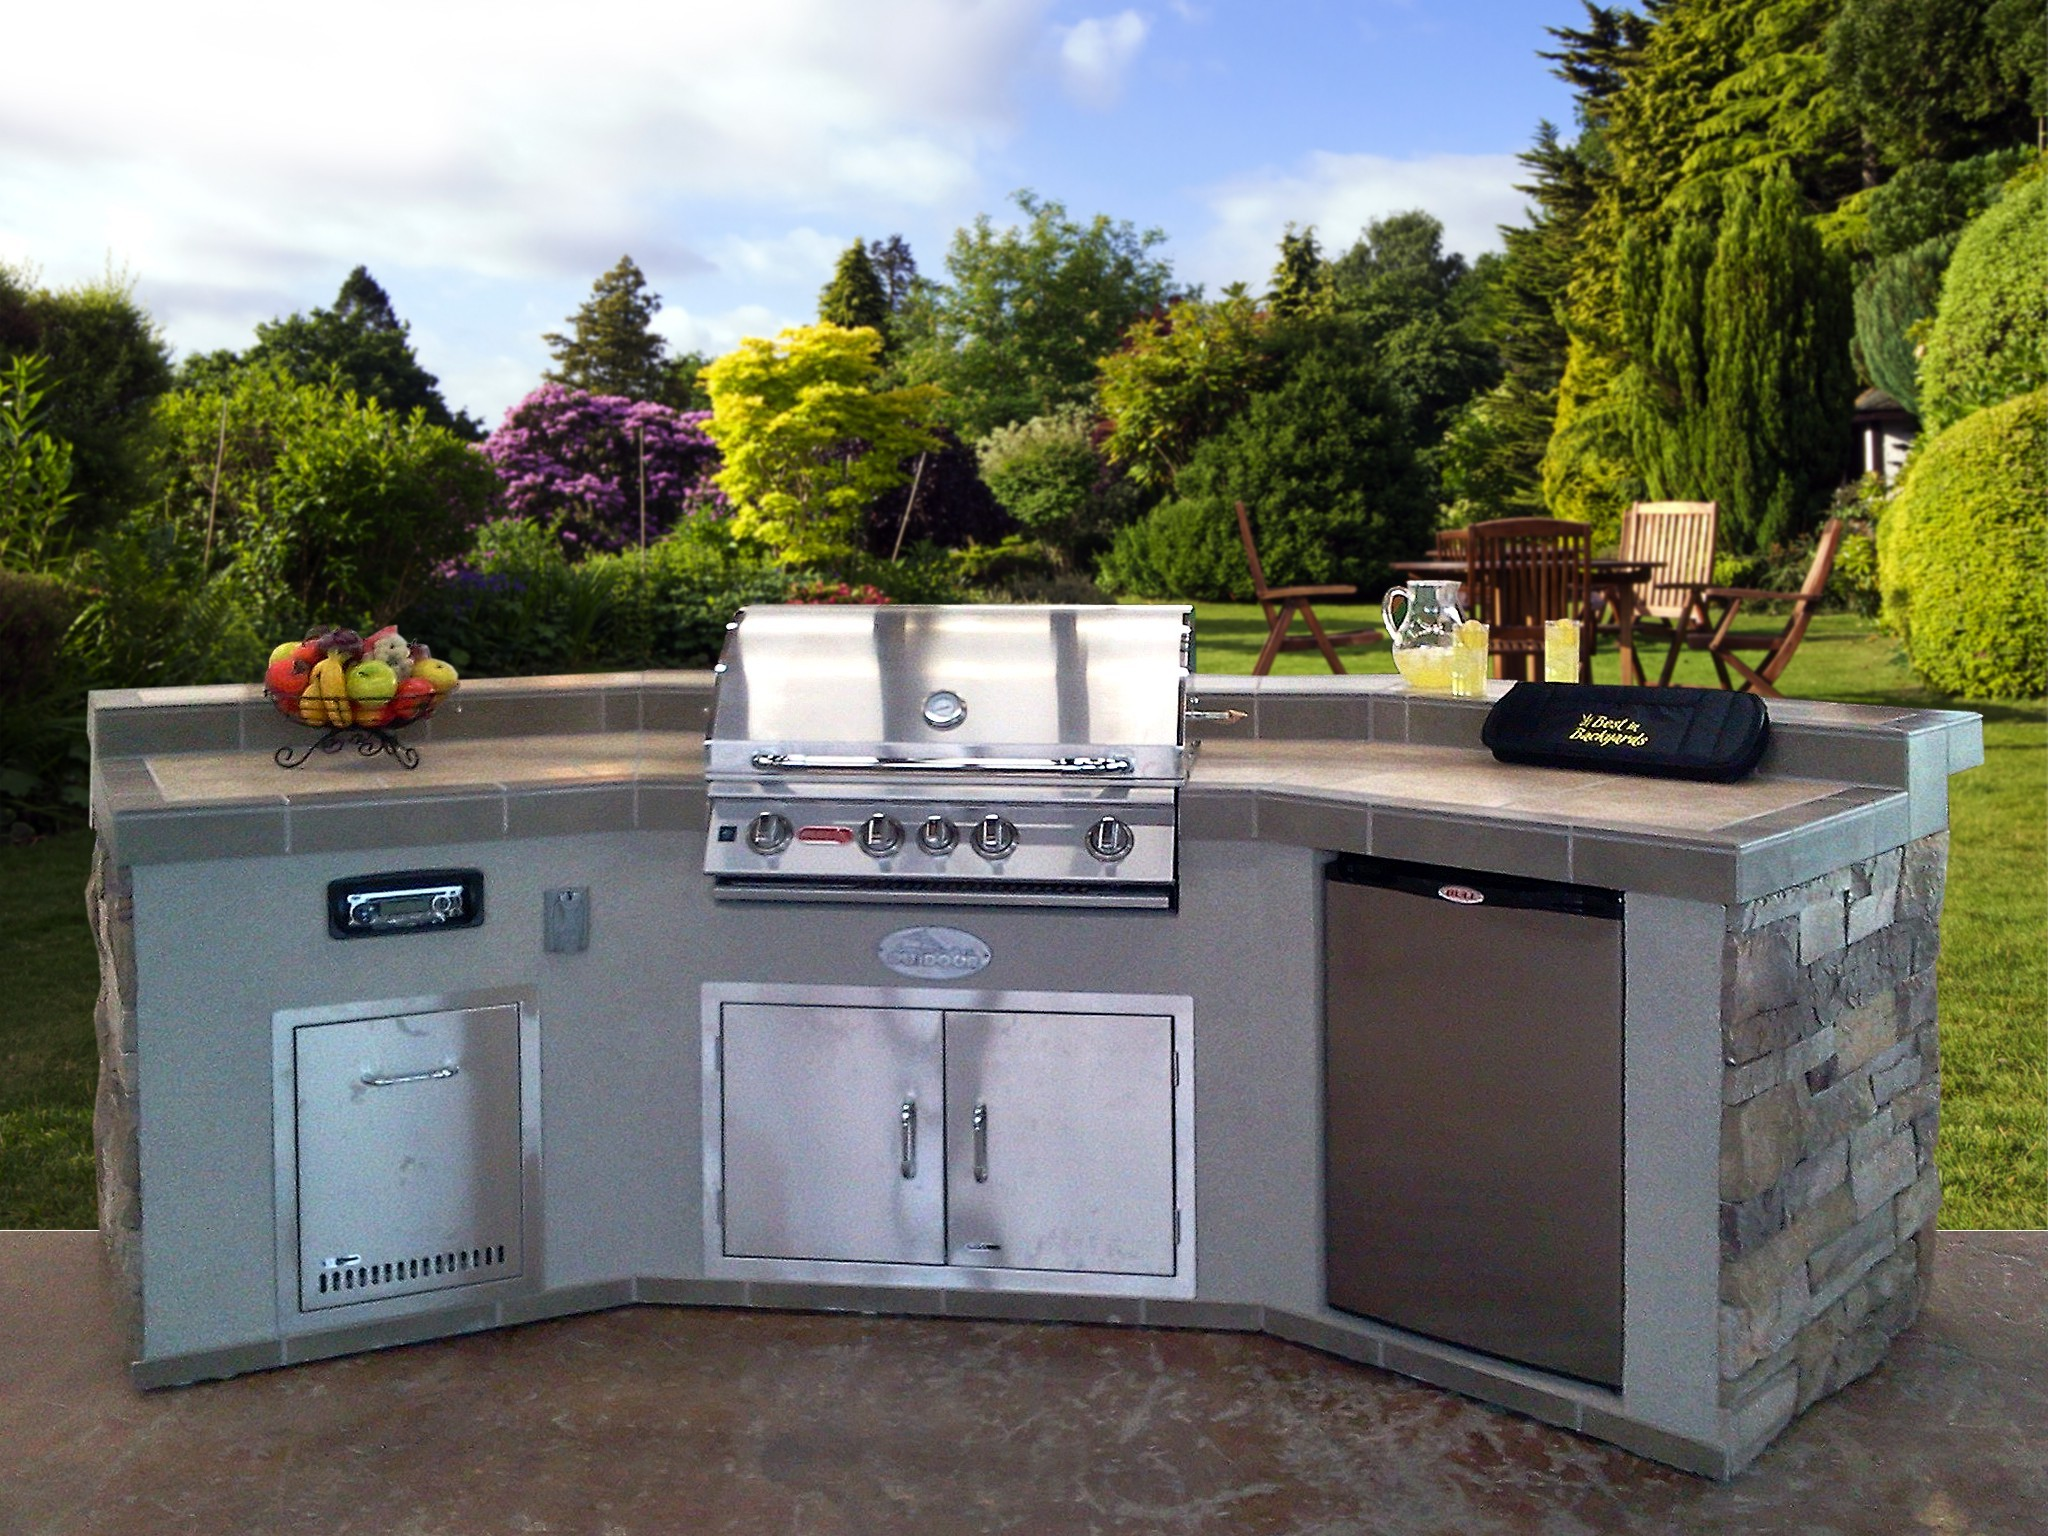 Prebuilt islands outdoor kitchens insideoutside spaces for Pre built outdoor kitchen islands